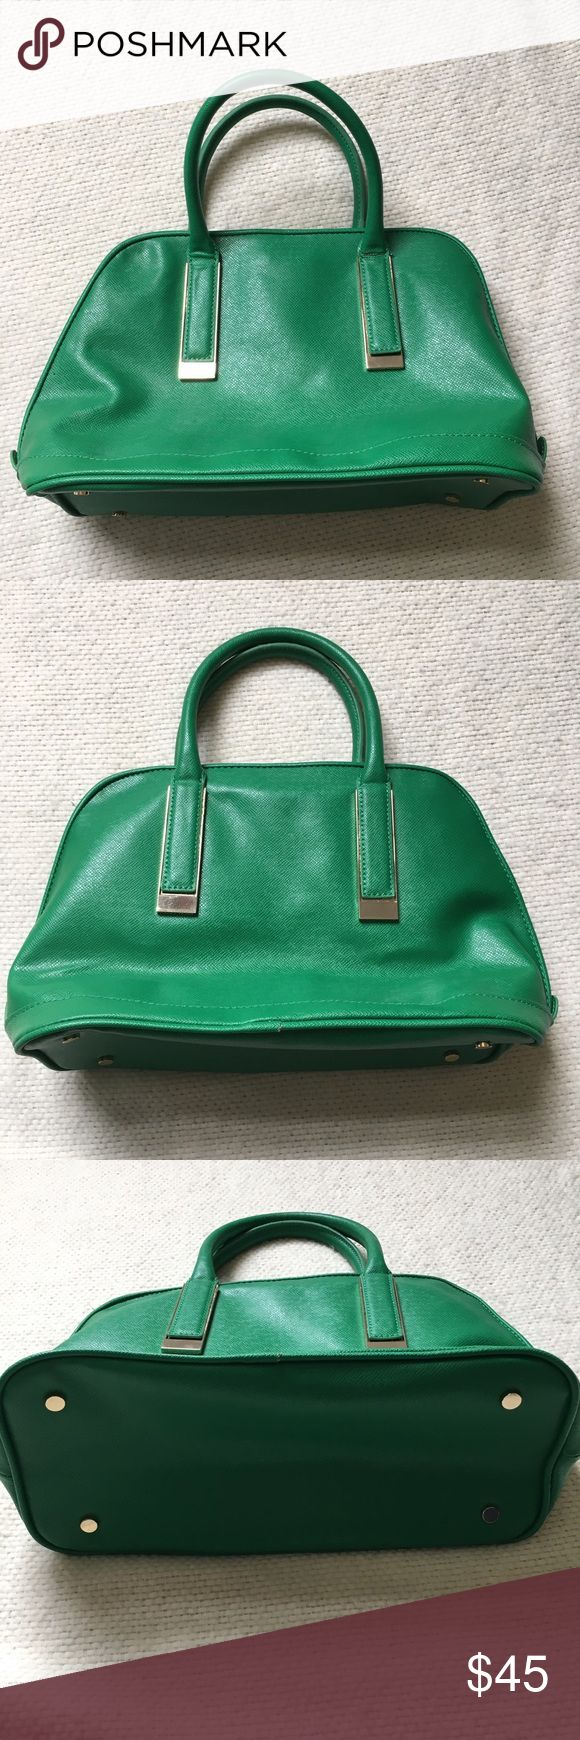 Ivanka Trump Green Dome Bag Ivanka Trump Green Dome Bag. Vibrant green! Excellent condition. The only issue is the stitching on the inside middle pocket seems to be coming undone (see photo). Ivanka Trump Bags Satchels